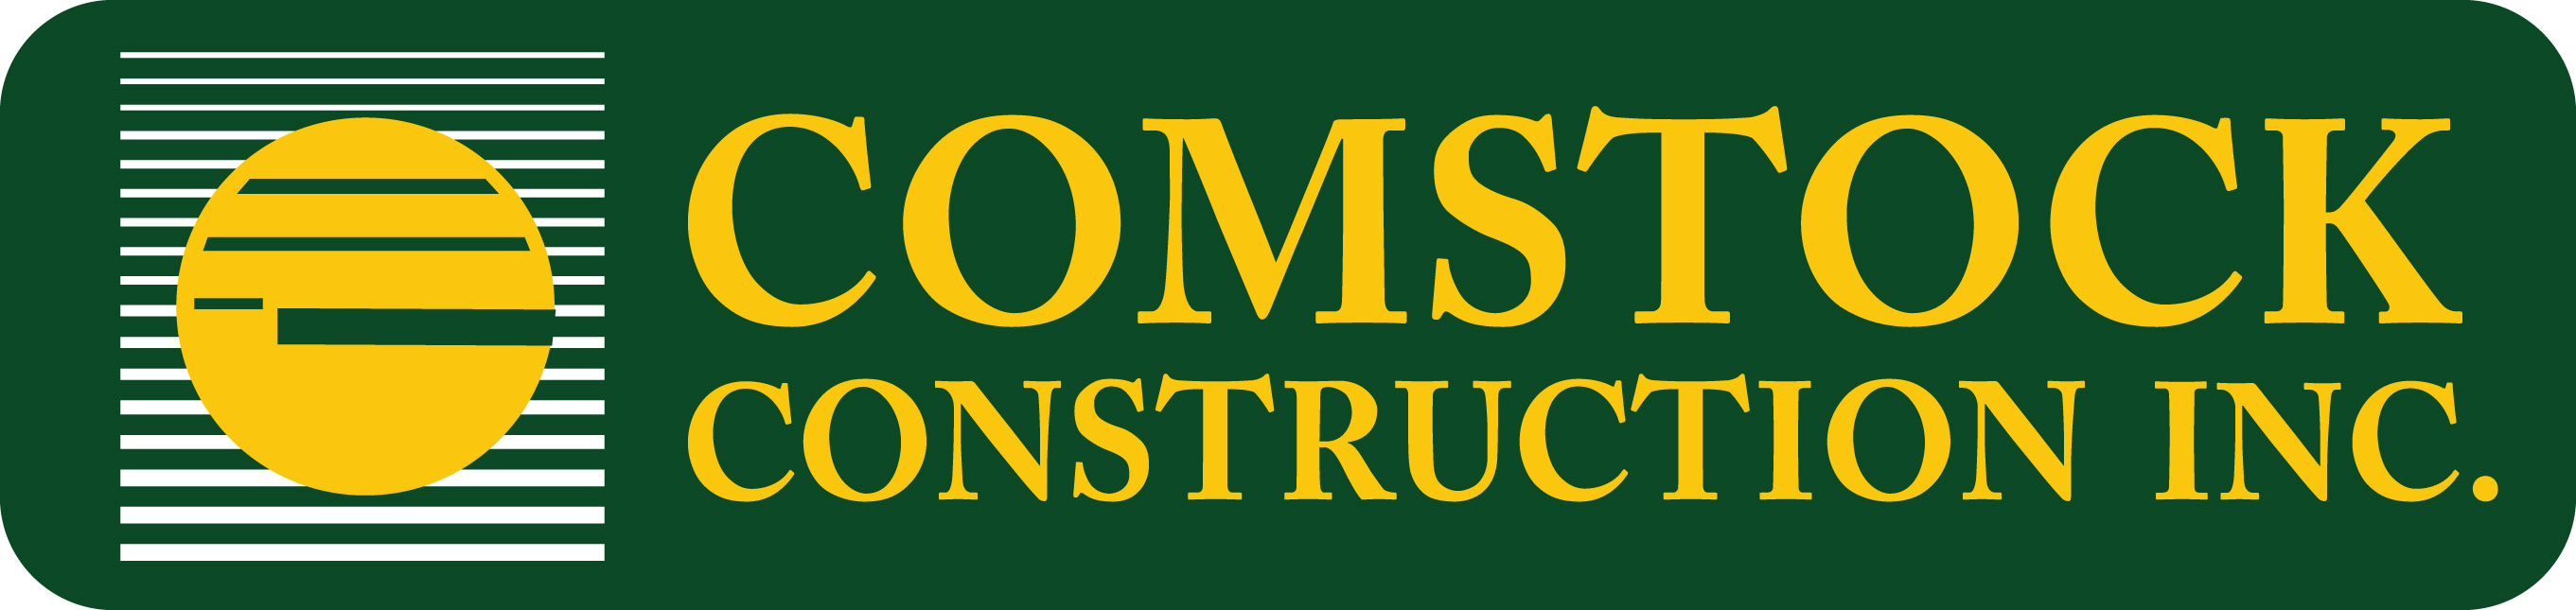 Comstock Construction-logo